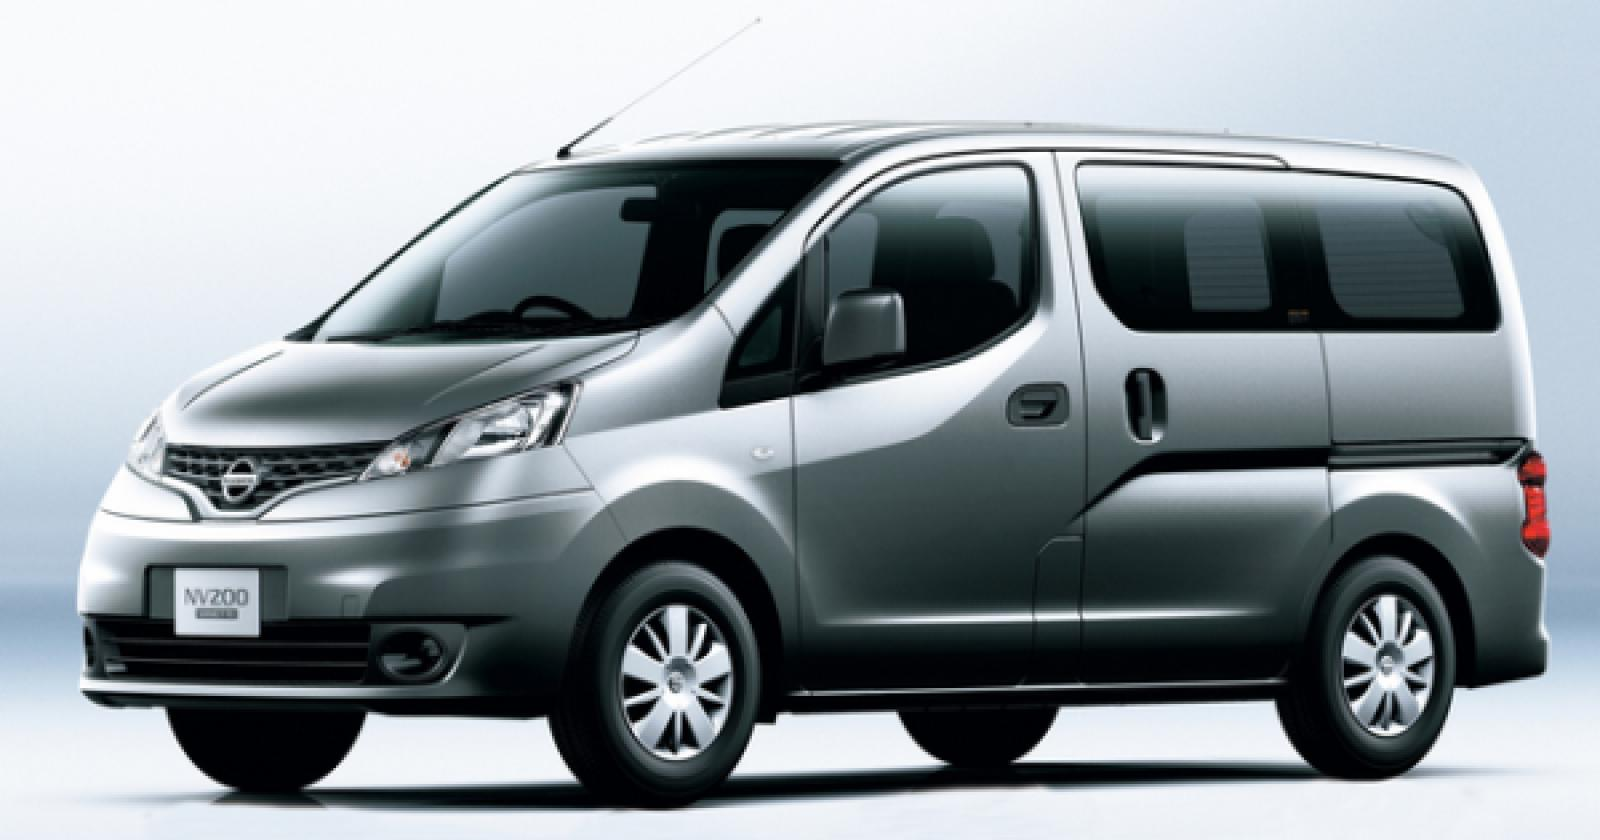 2015 nissan nv200 information and photos zombiedrive. Black Bedroom Furniture Sets. Home Design Ideas